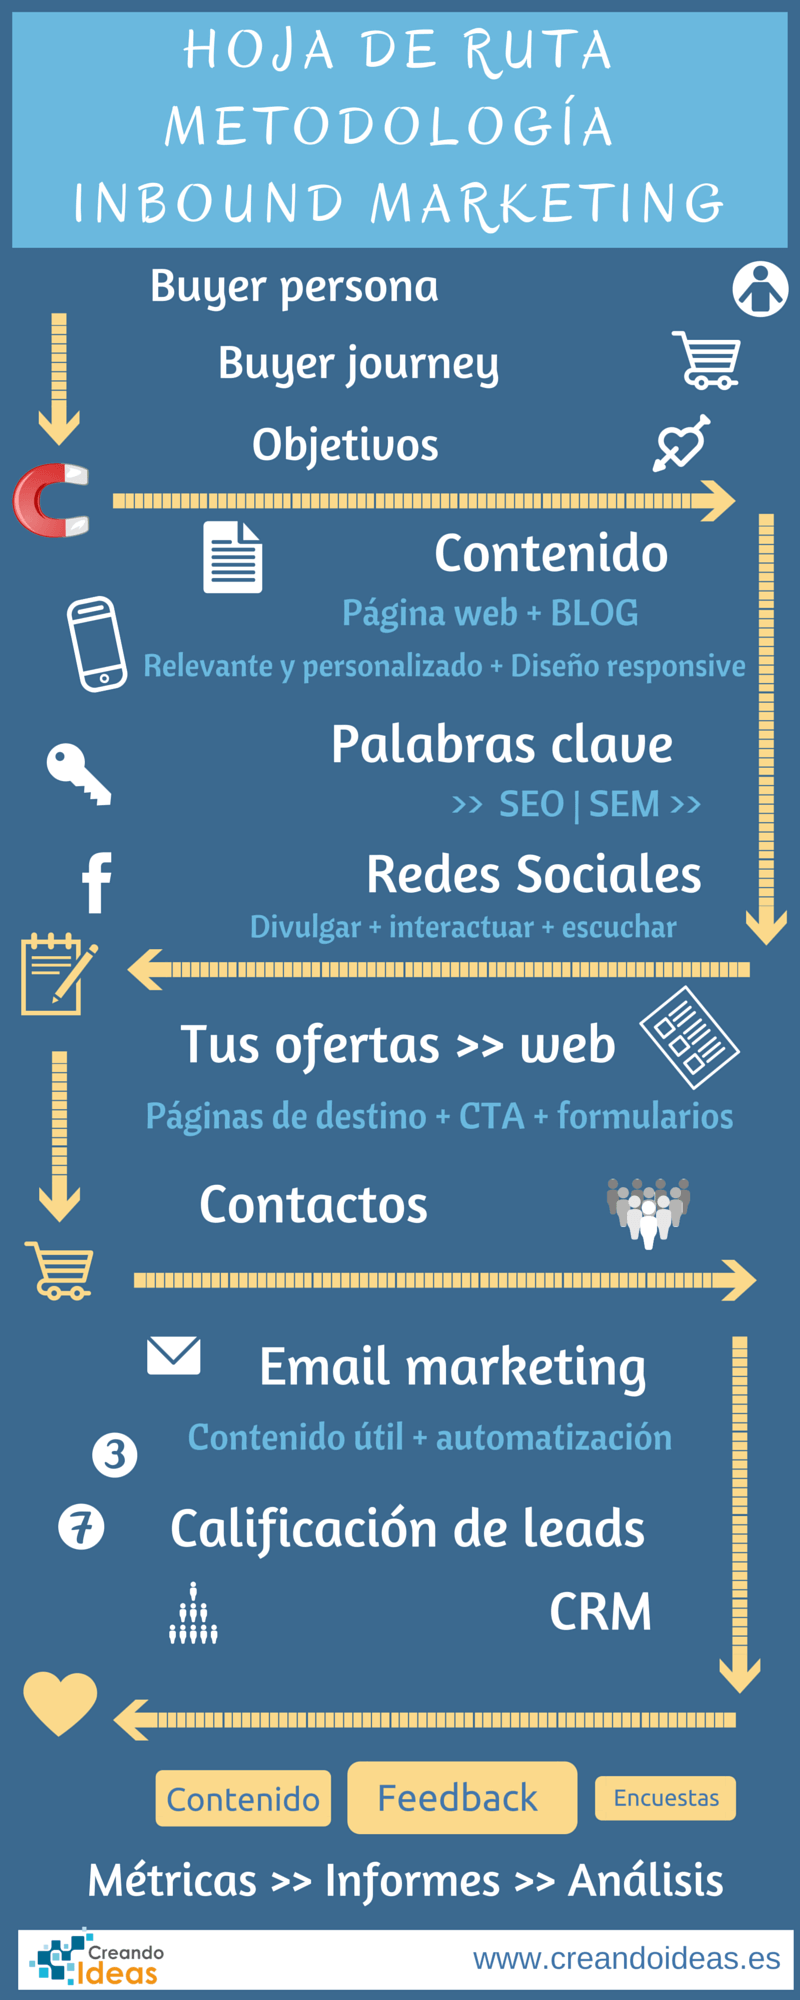 Hoja de ruta de la metodología Inbound Marketing